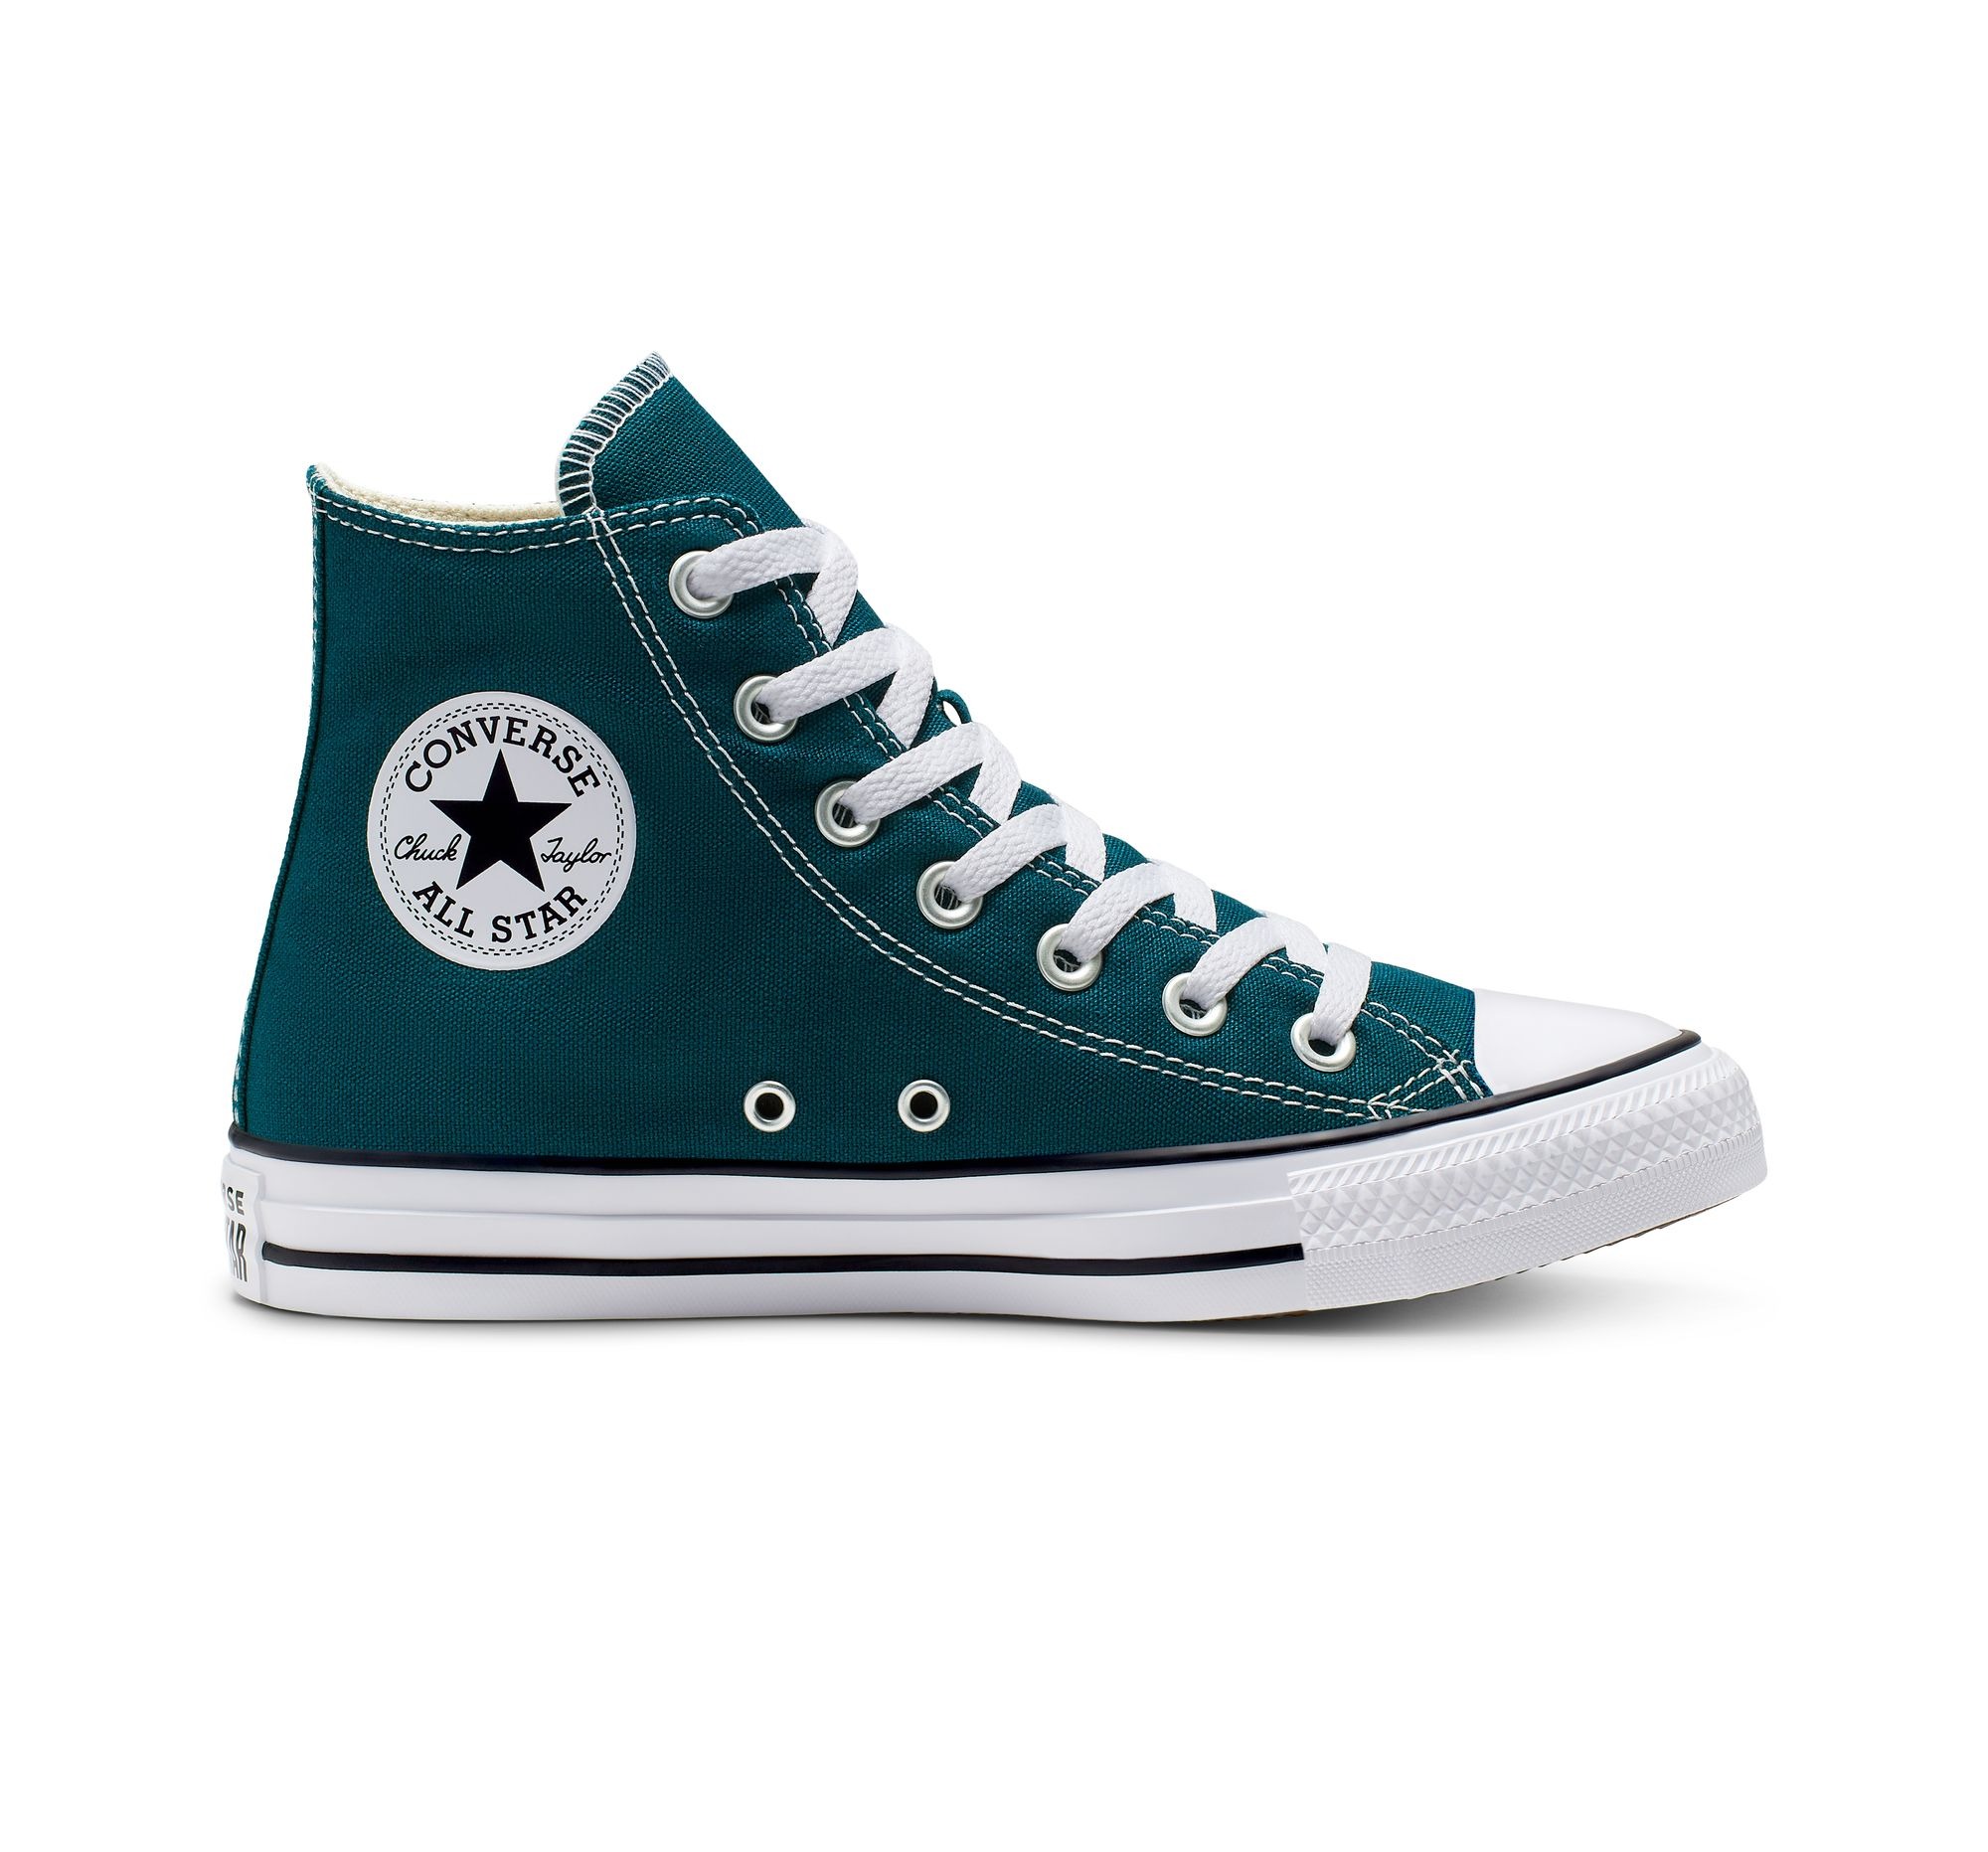 Colors to match all of your moods. FRESH TINTS. A pair for every day you wake up wanting to match your color to your vibes, in the iconic Chuck Taylor All Star sneaker. The colors you wanted most�fresh and ready for bright days, cloudy mornings, and all t